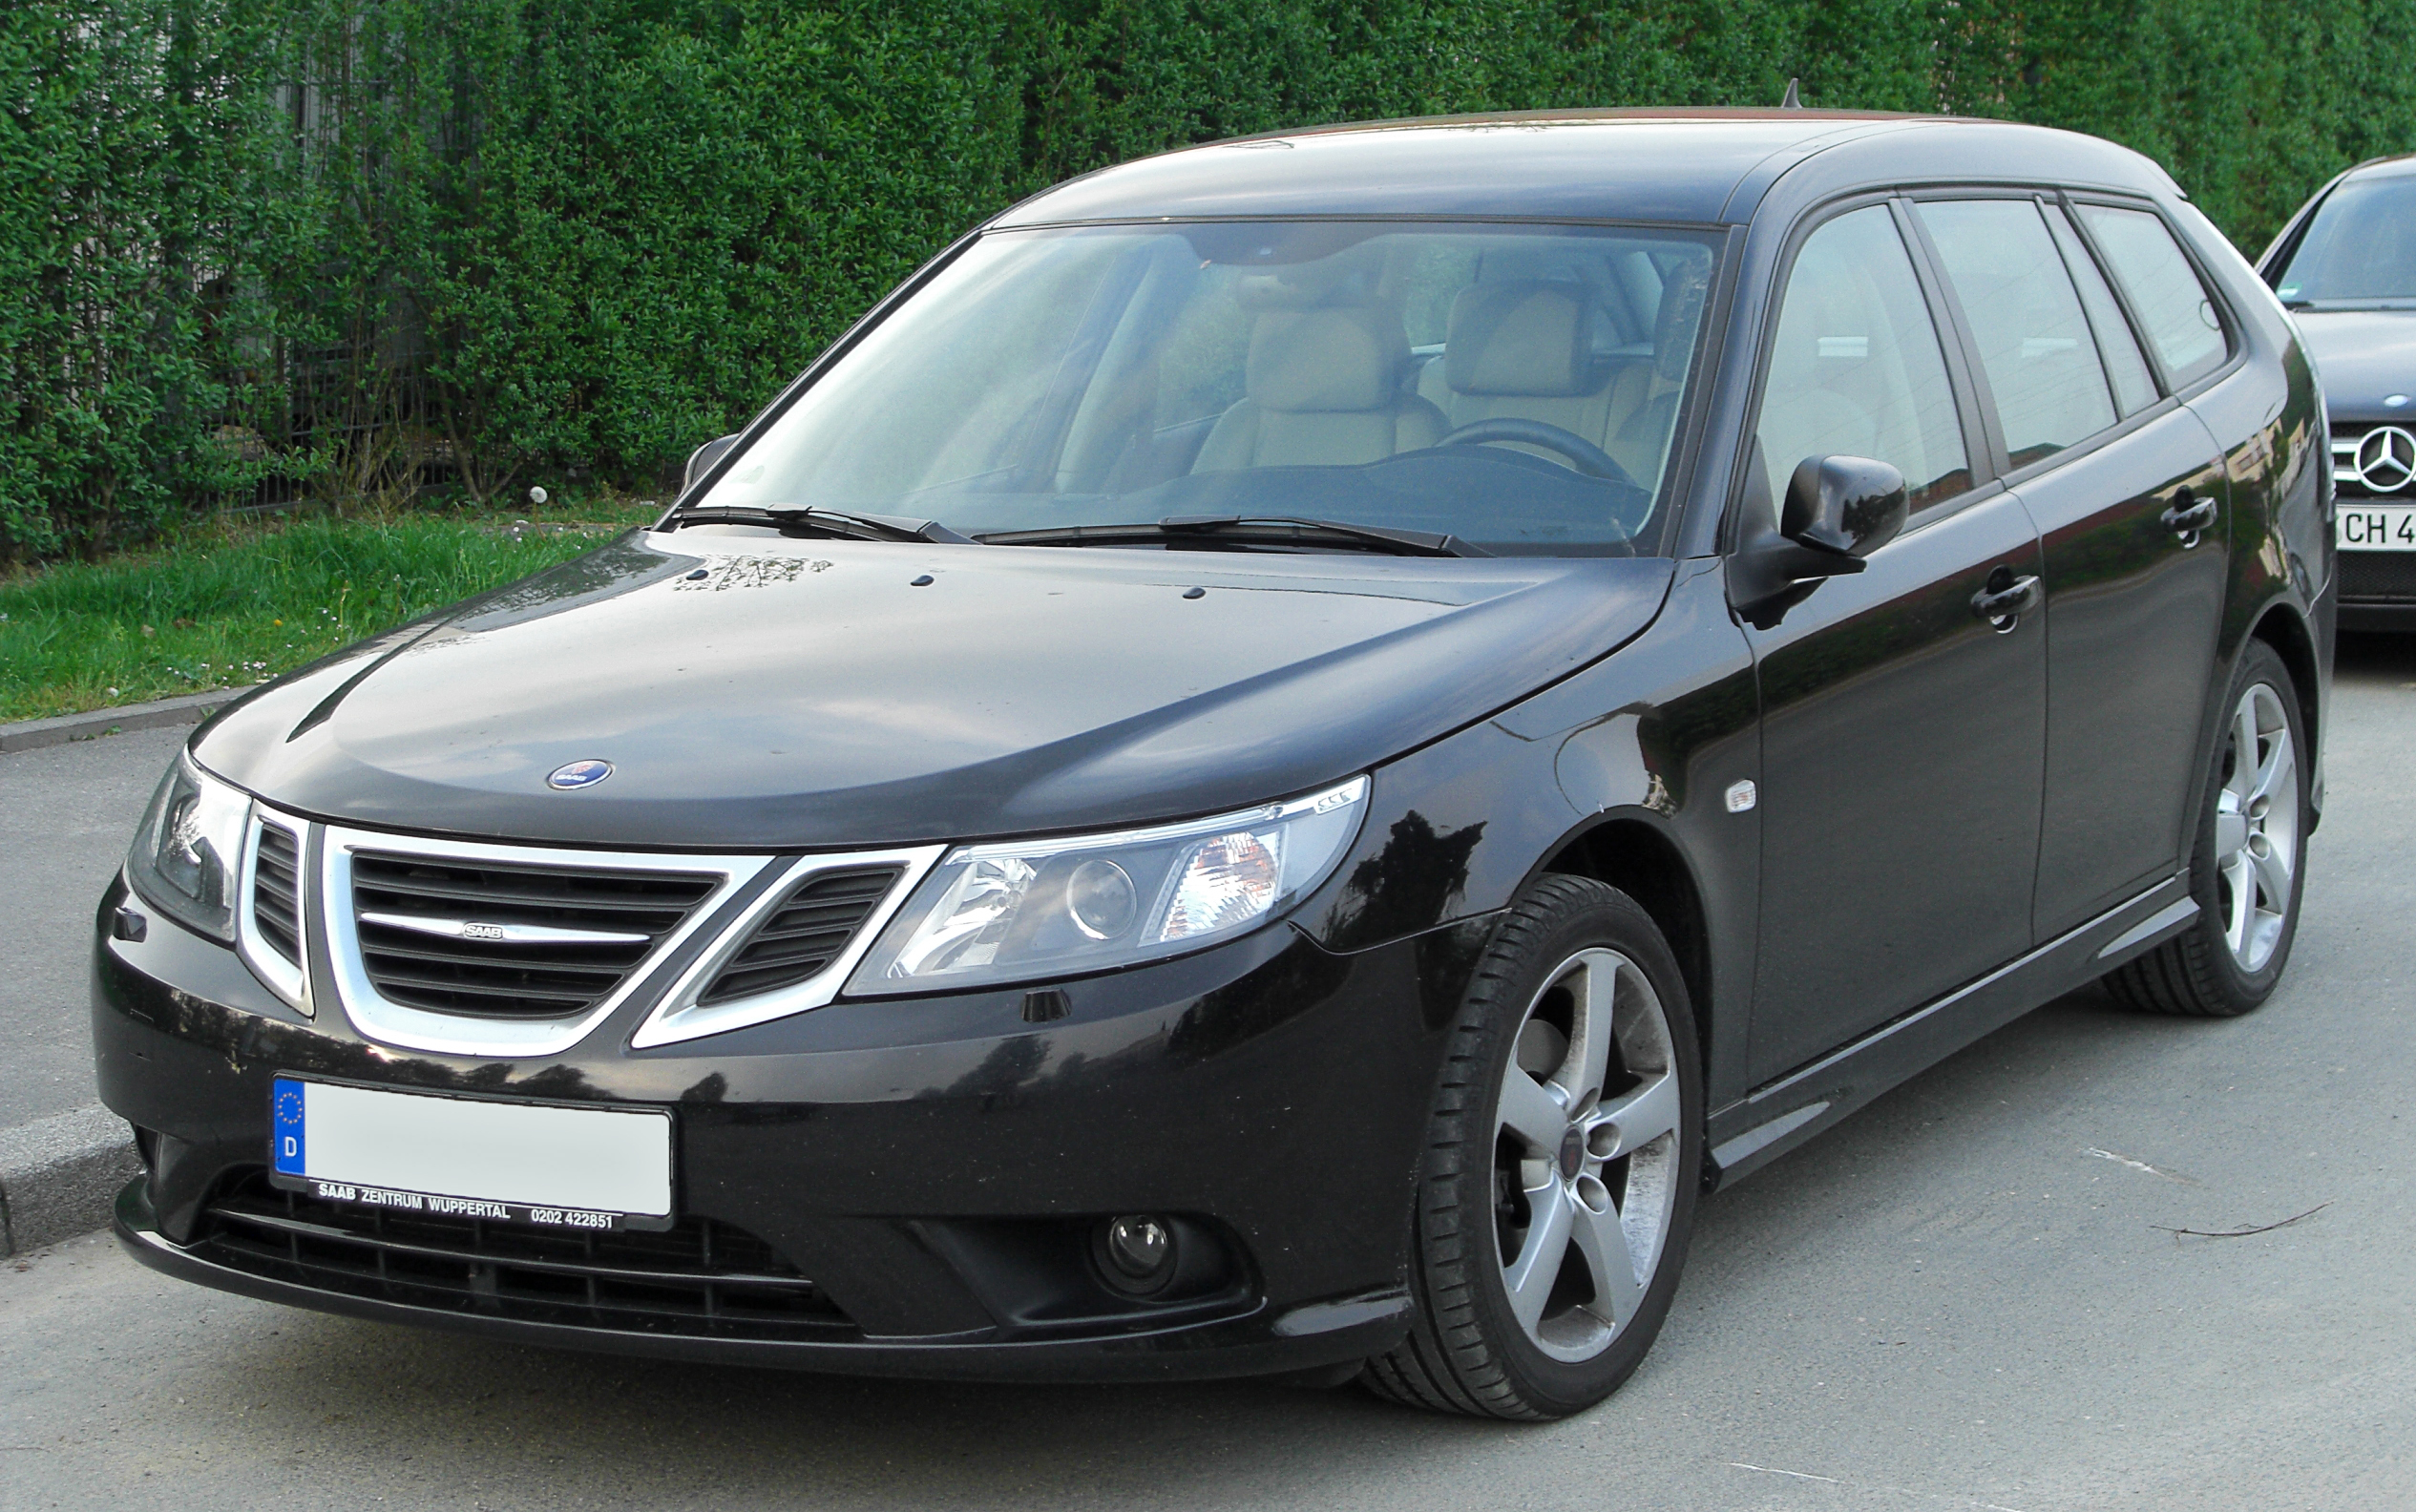 file saab 9 3 sportcombi ii 1 9 tid facelift front wikimedia commons. Black Bedroom Furniture Sets. Home Design Ideas